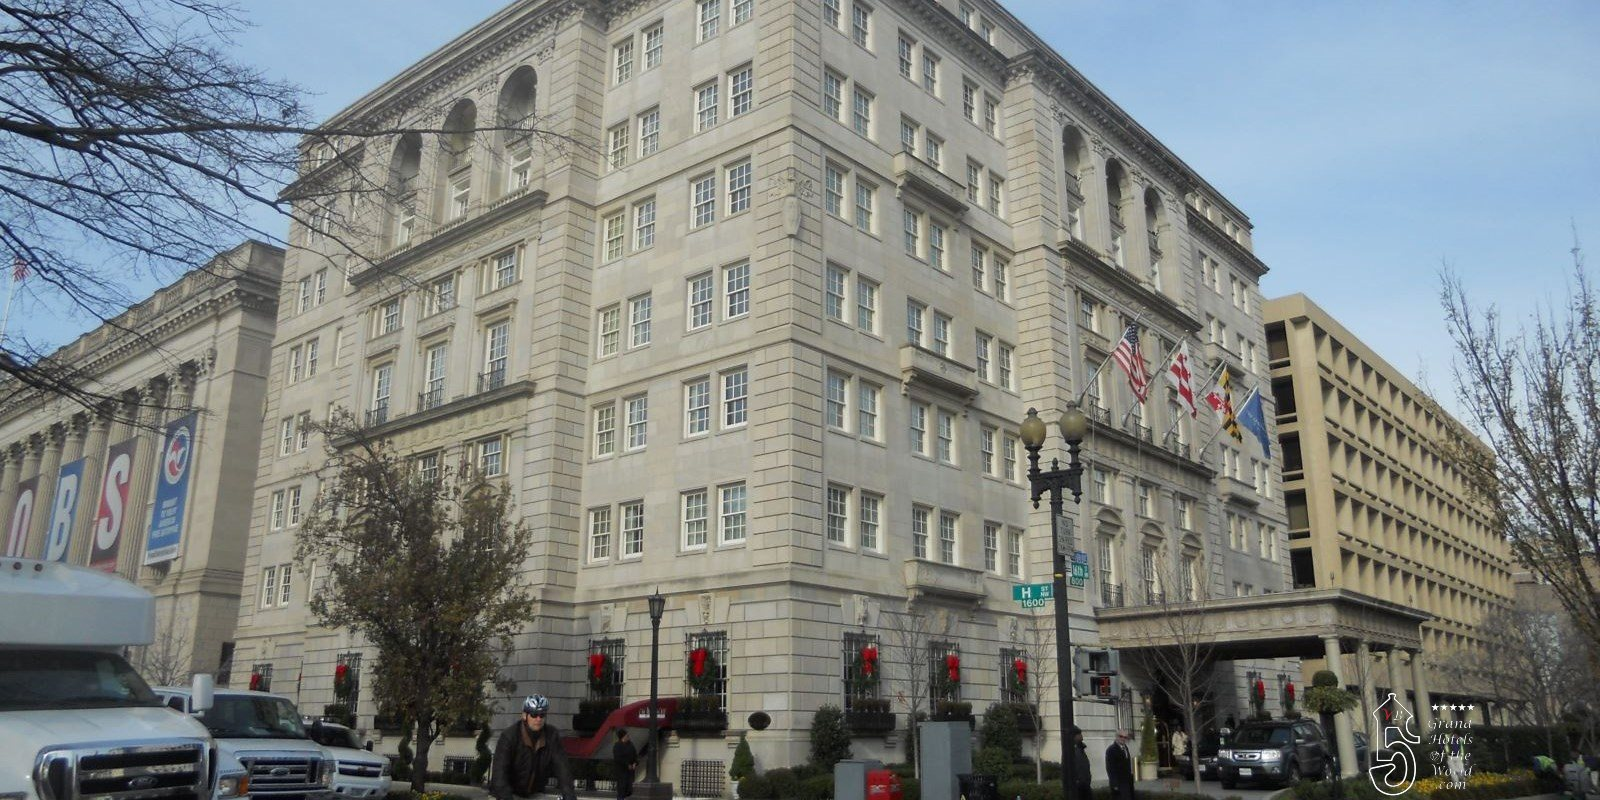 The Hay Adams in Washington DC